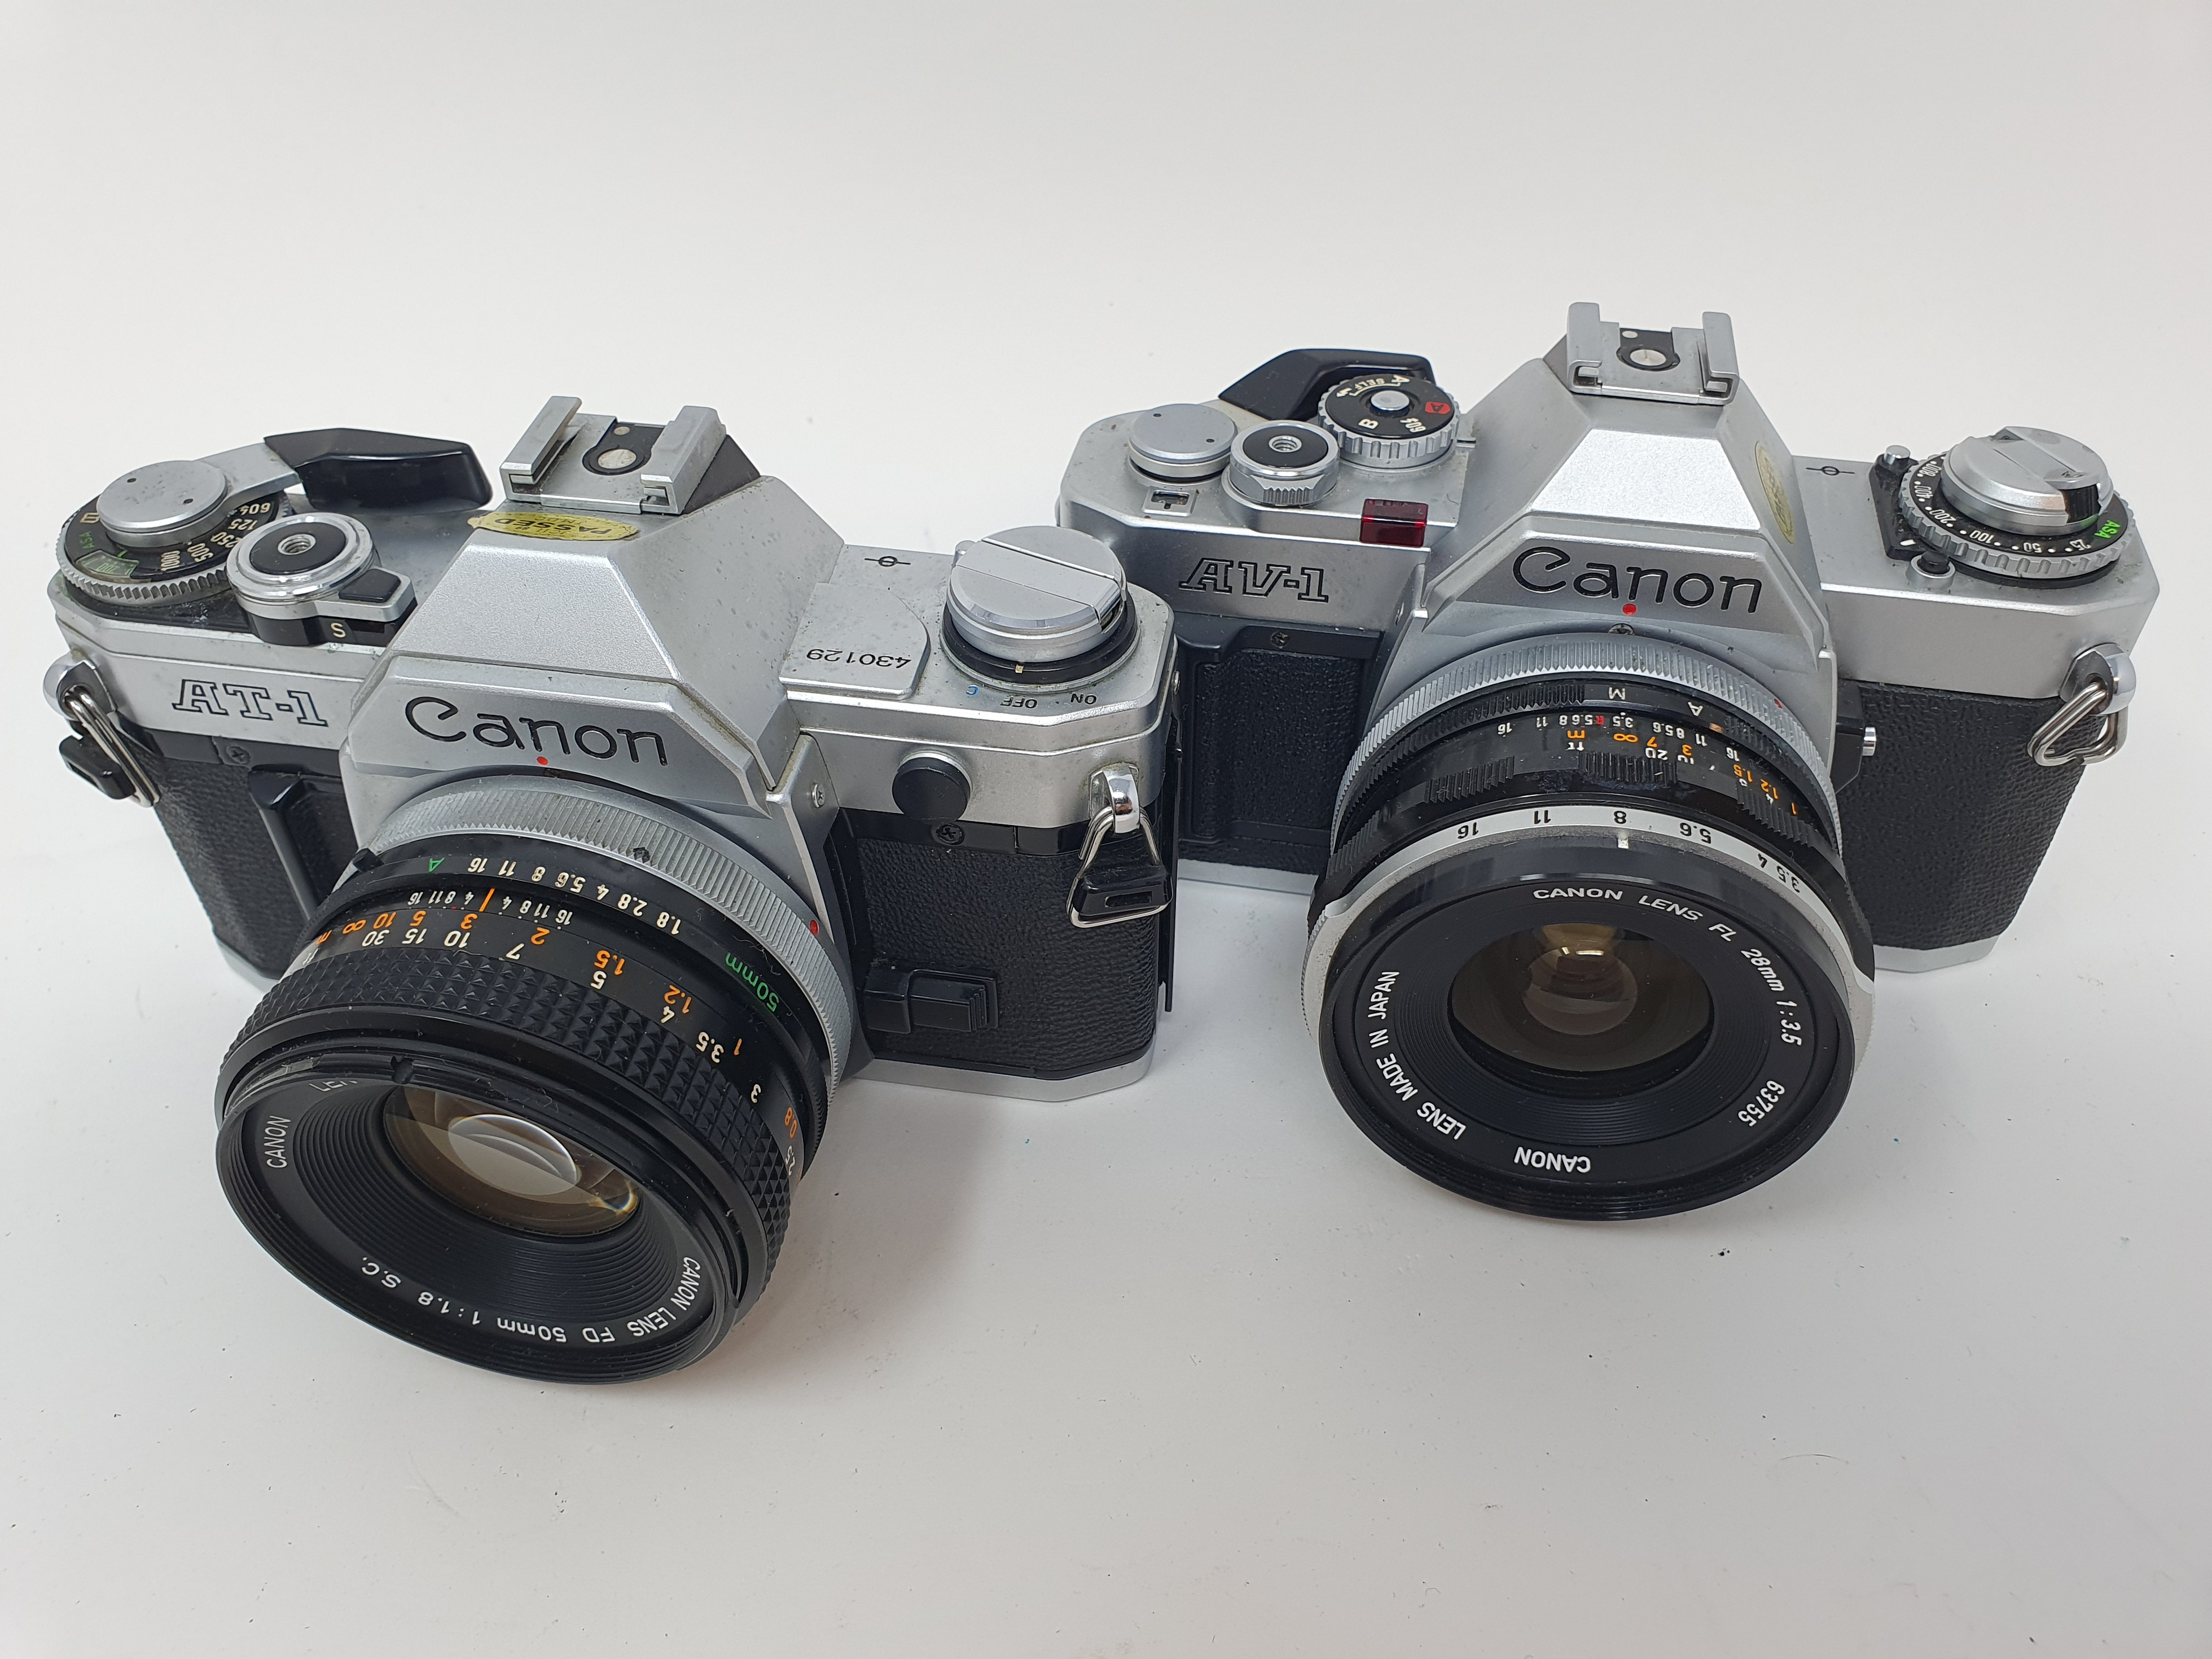 A Canon AT-1 camera and a Canon AV-1 camera (2) Provenance: Part of a vast single owner collection - Image 2 of 2